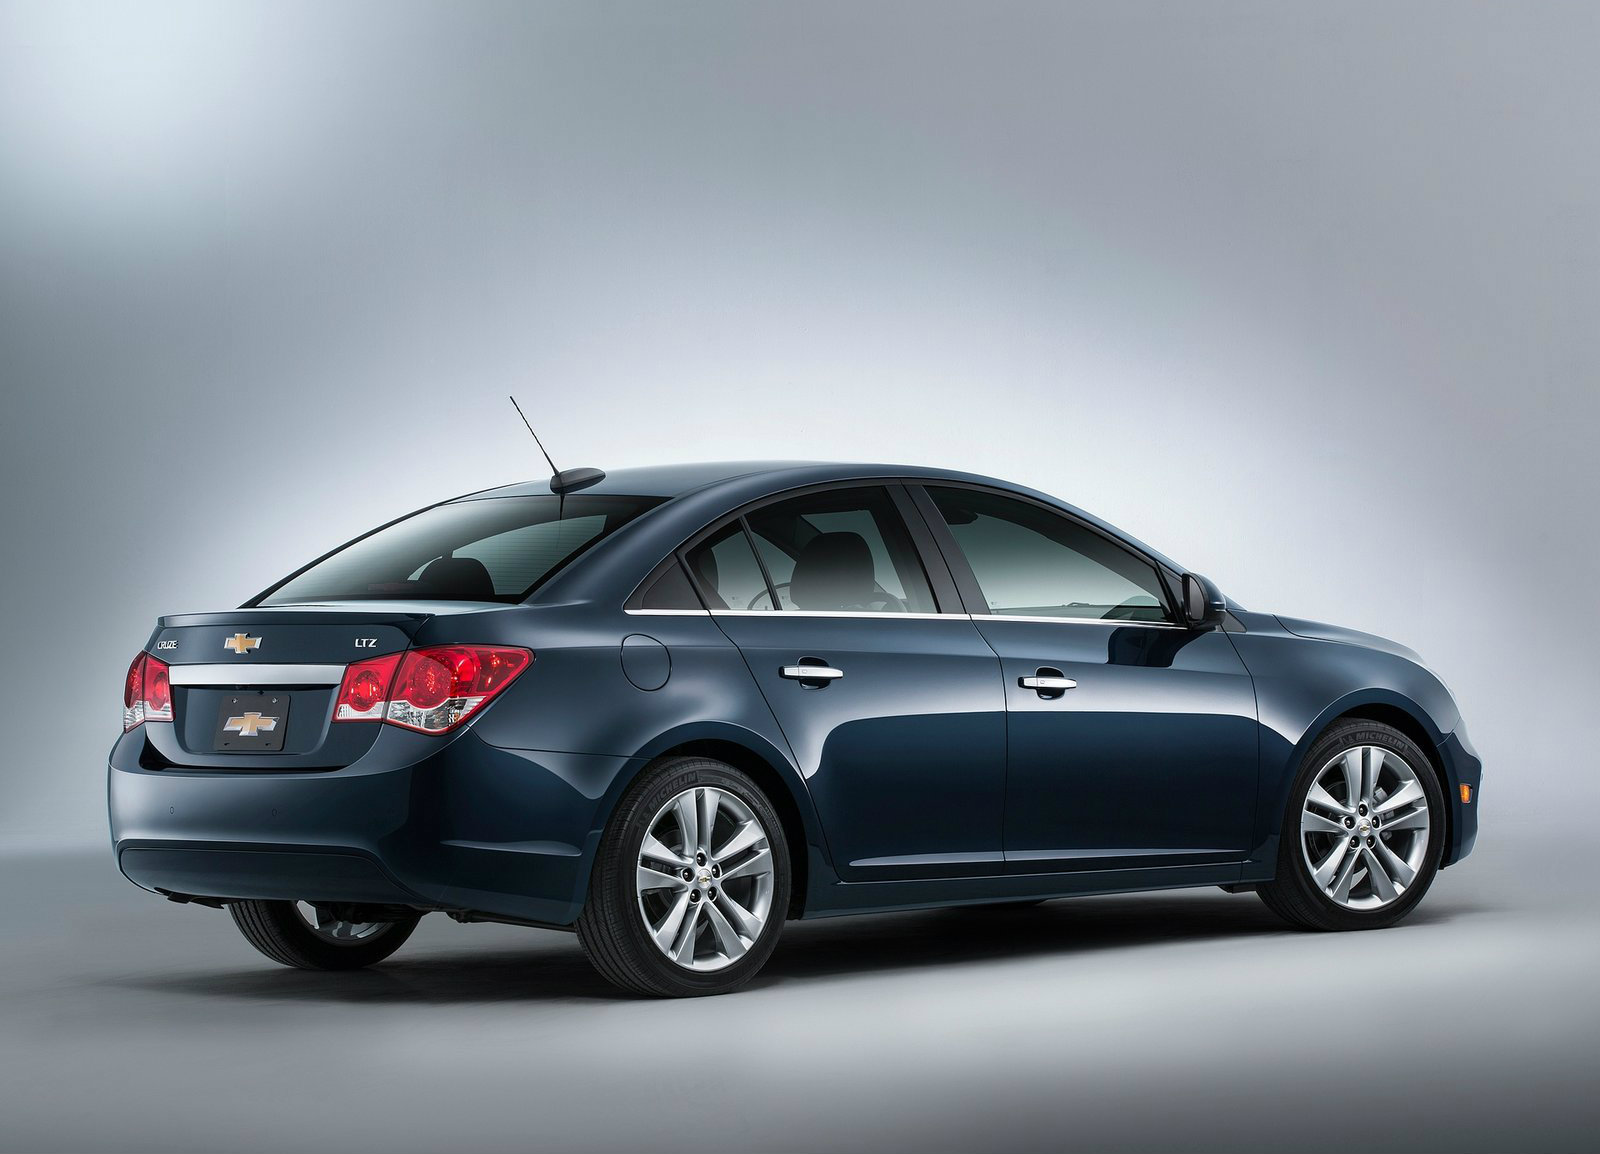 Cruze chevy cruze lt rs specs : 2015 Chevrolet Cruze Gets Minor Styling and Tech Upgrades [Video ...